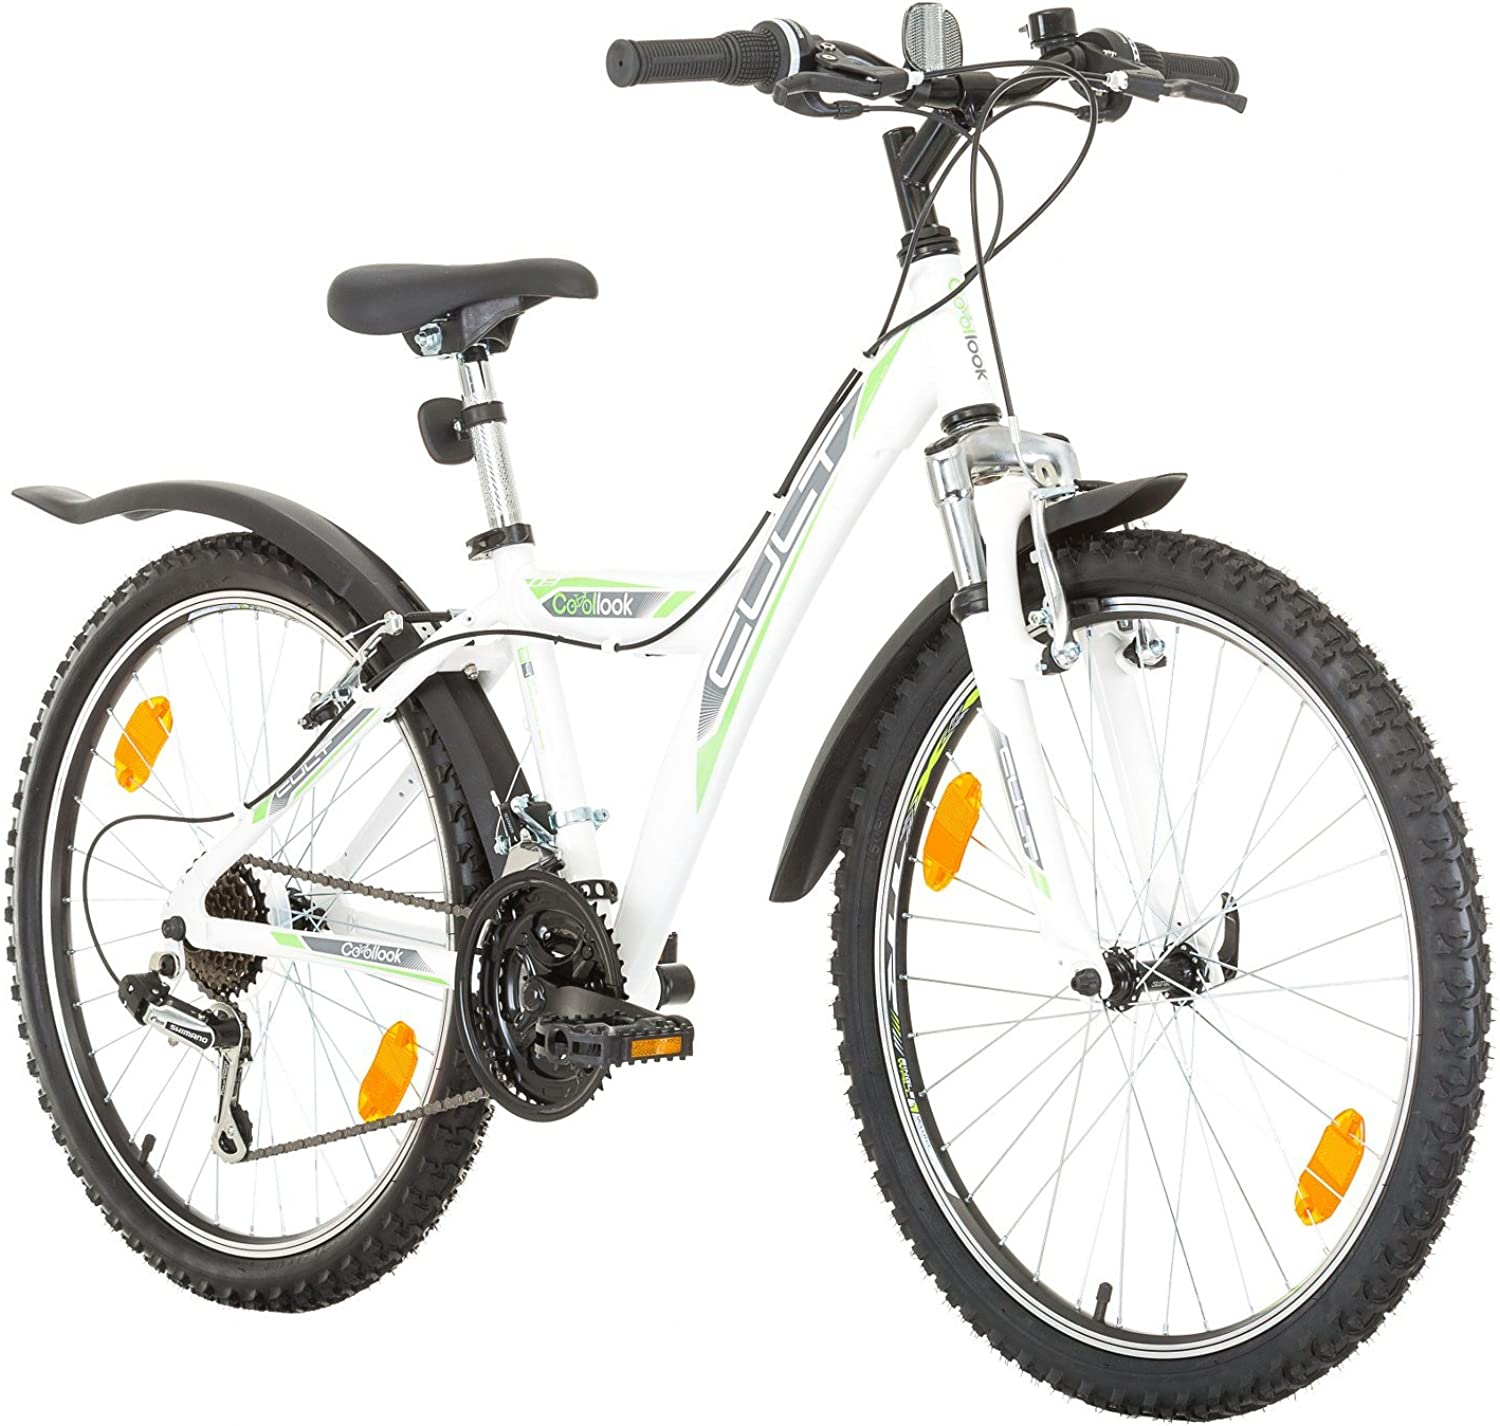 Multibrand, 24 inches, CoollooK, CULT, Unisex, Mountain, Hardtail Aluminum Frame, 18 Speed, Shimano, Rims MACH1, White-Gloss